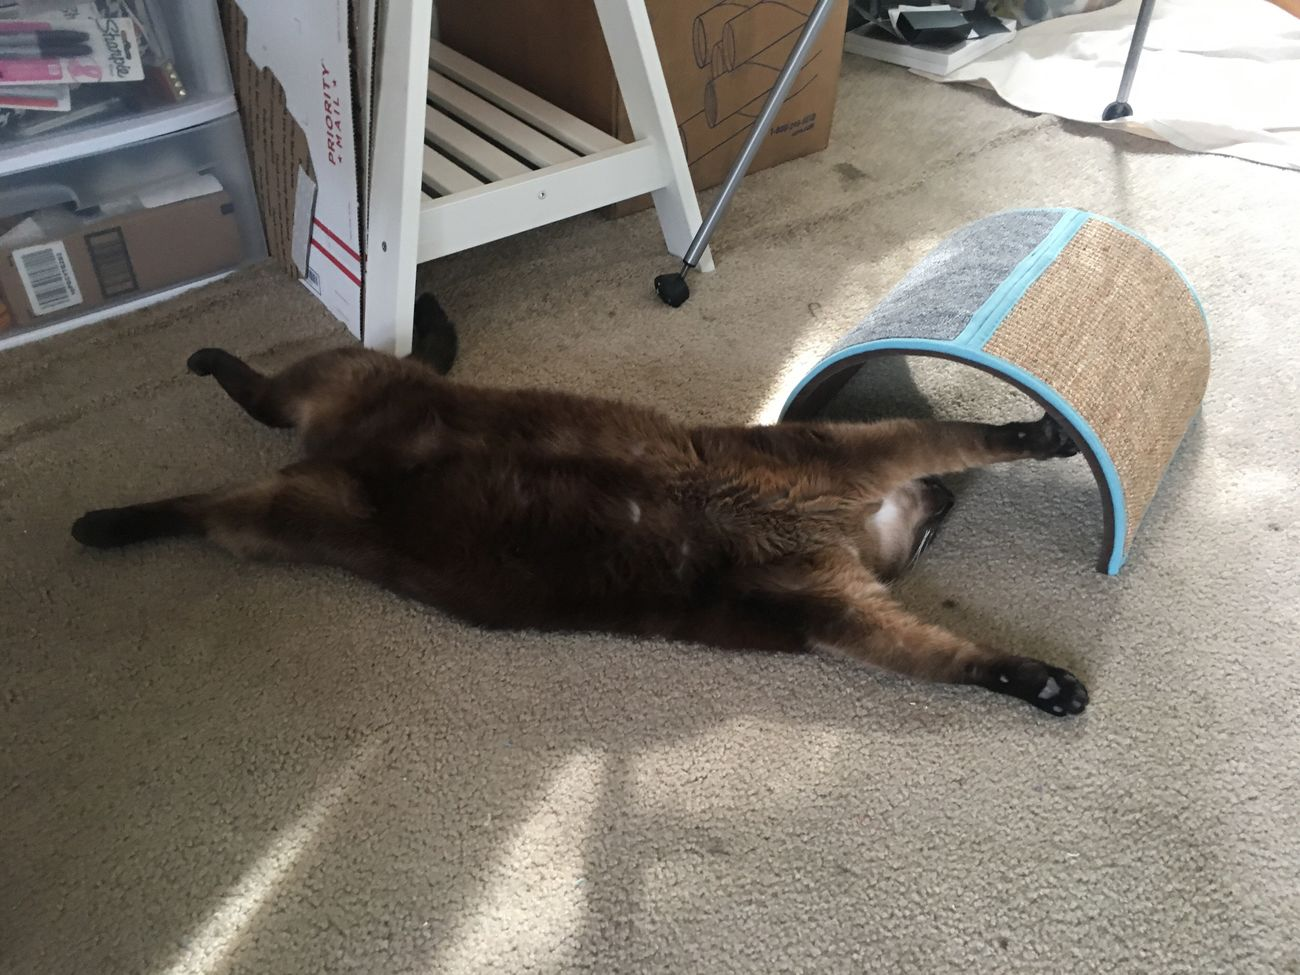 Pets One Animal Domestic Animals Animal Themes Mammal Domestic Cat Lying Down Dog Cat Indoors  No People Home Interior Feline Day Siamese Cat Stretching Cats Lazy Day Lazy Relaxed Relaxing Sunbathing Sleeping Lolcat Funny